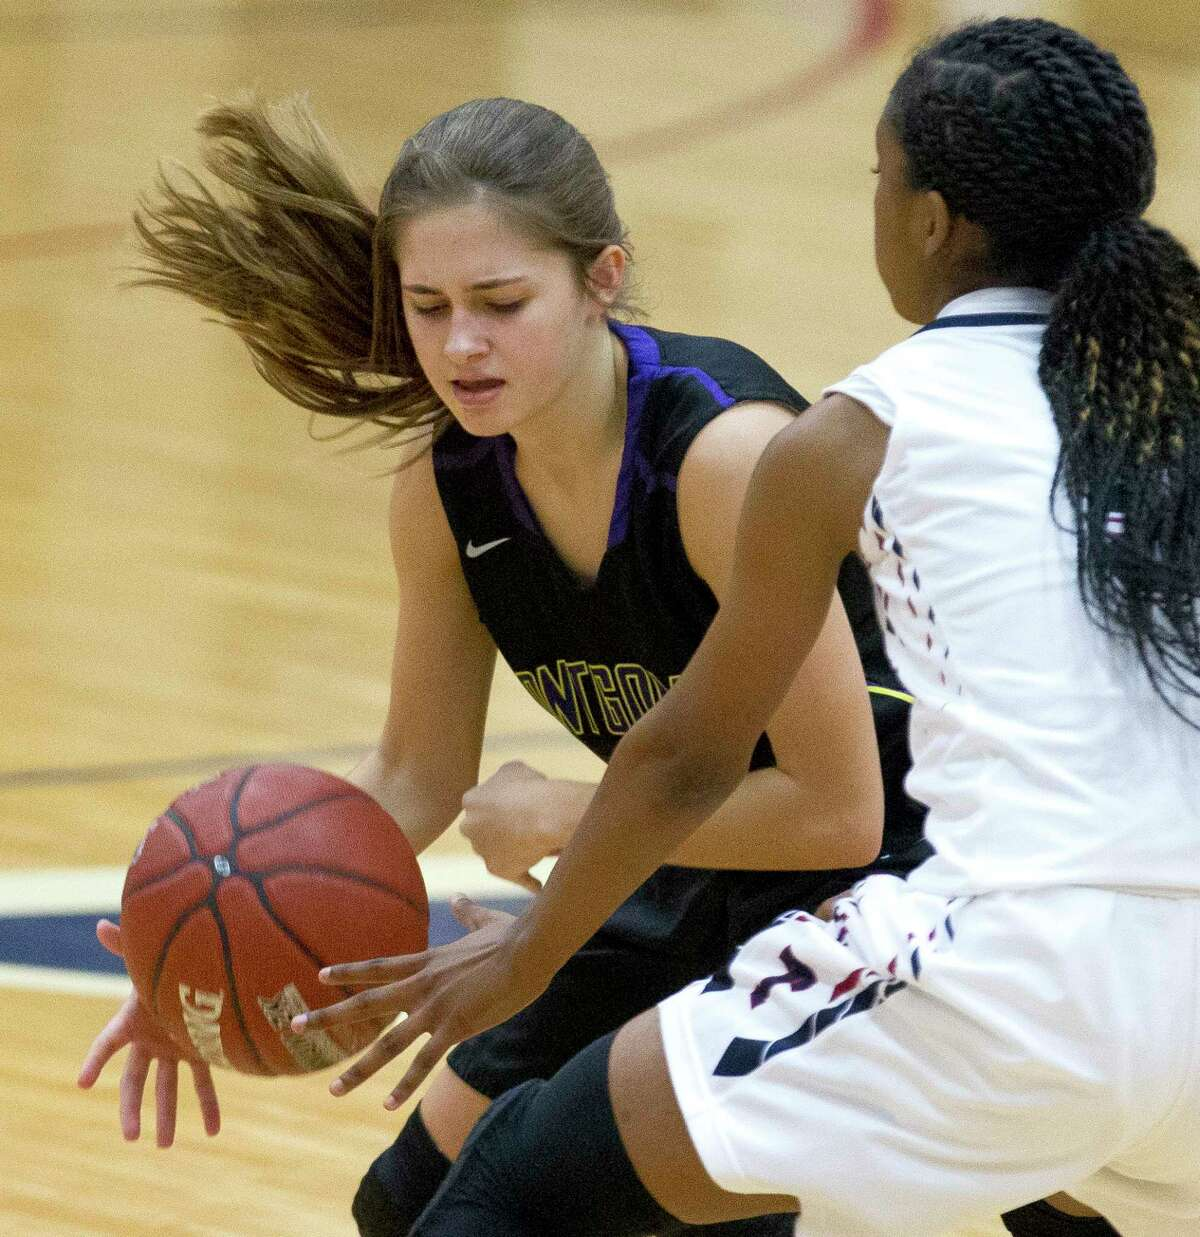 Montgomery guard Lindsey Hefner (21) tries to control the ball as Katy Tompkins guard Crystal Smith (5) gives pressure during the first quarter of a high school girls basketball game in the Phillips 66 Classic at Katy Tompkins High School, Thursday, Nov. 30, 2017, in Katy.